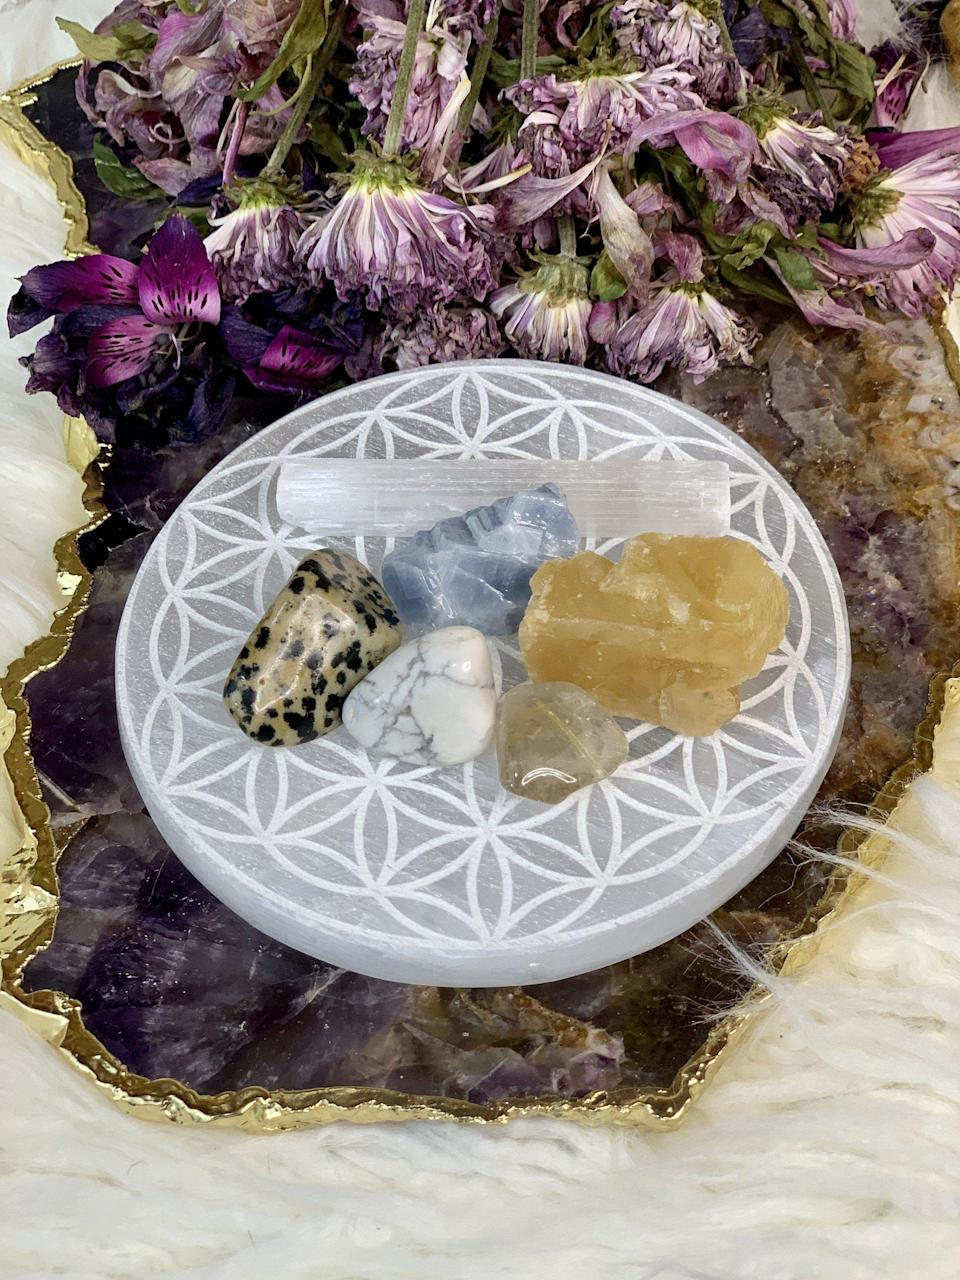 """<p>chakrazulucrystals.com</p><p><strong>$20.00</strong></p><p><a href=""""https://chakrazulucrystals.com/collections/the-zodiac-shop/products/crystals-for-gemini"""" rel=""""nofollow noopener"""" target=""""_blank"""" data-ylk=""""slk:Shop Now"""" class=""""link rapid-noclick-resp"""">Shop Now</a></p><p>Sure, your friend already has a few crystals, but do they have a set of crystals specifically chosen for them based on their zodiac sign???</p>"""